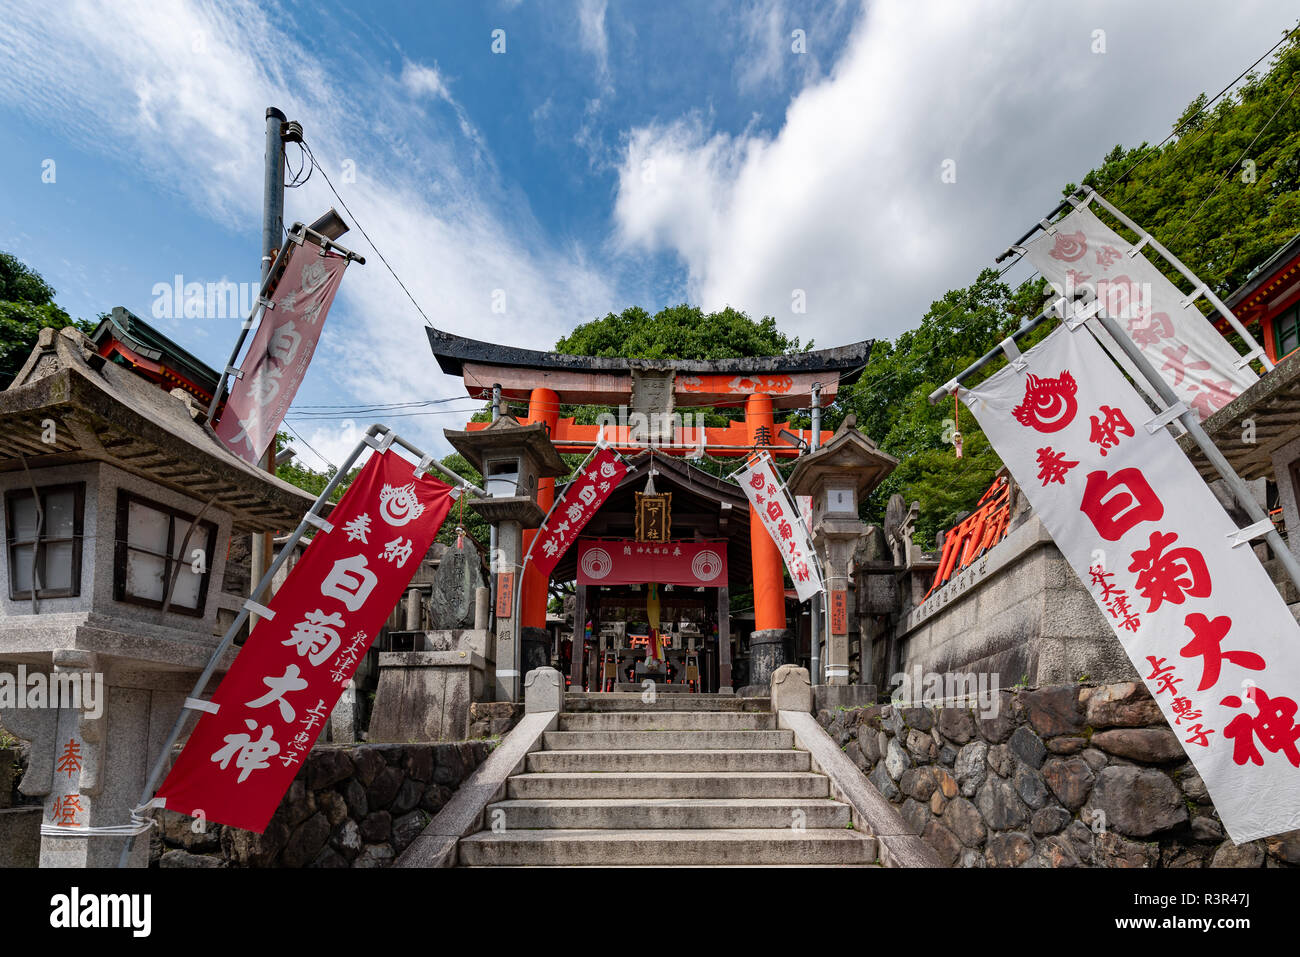 Fushimi Inari Taisha (When the wish is fulfilled the torii that wrote the name was built) Colorful autumn, Fushimi Inariyama in Kyoto, Japan - Stock Image